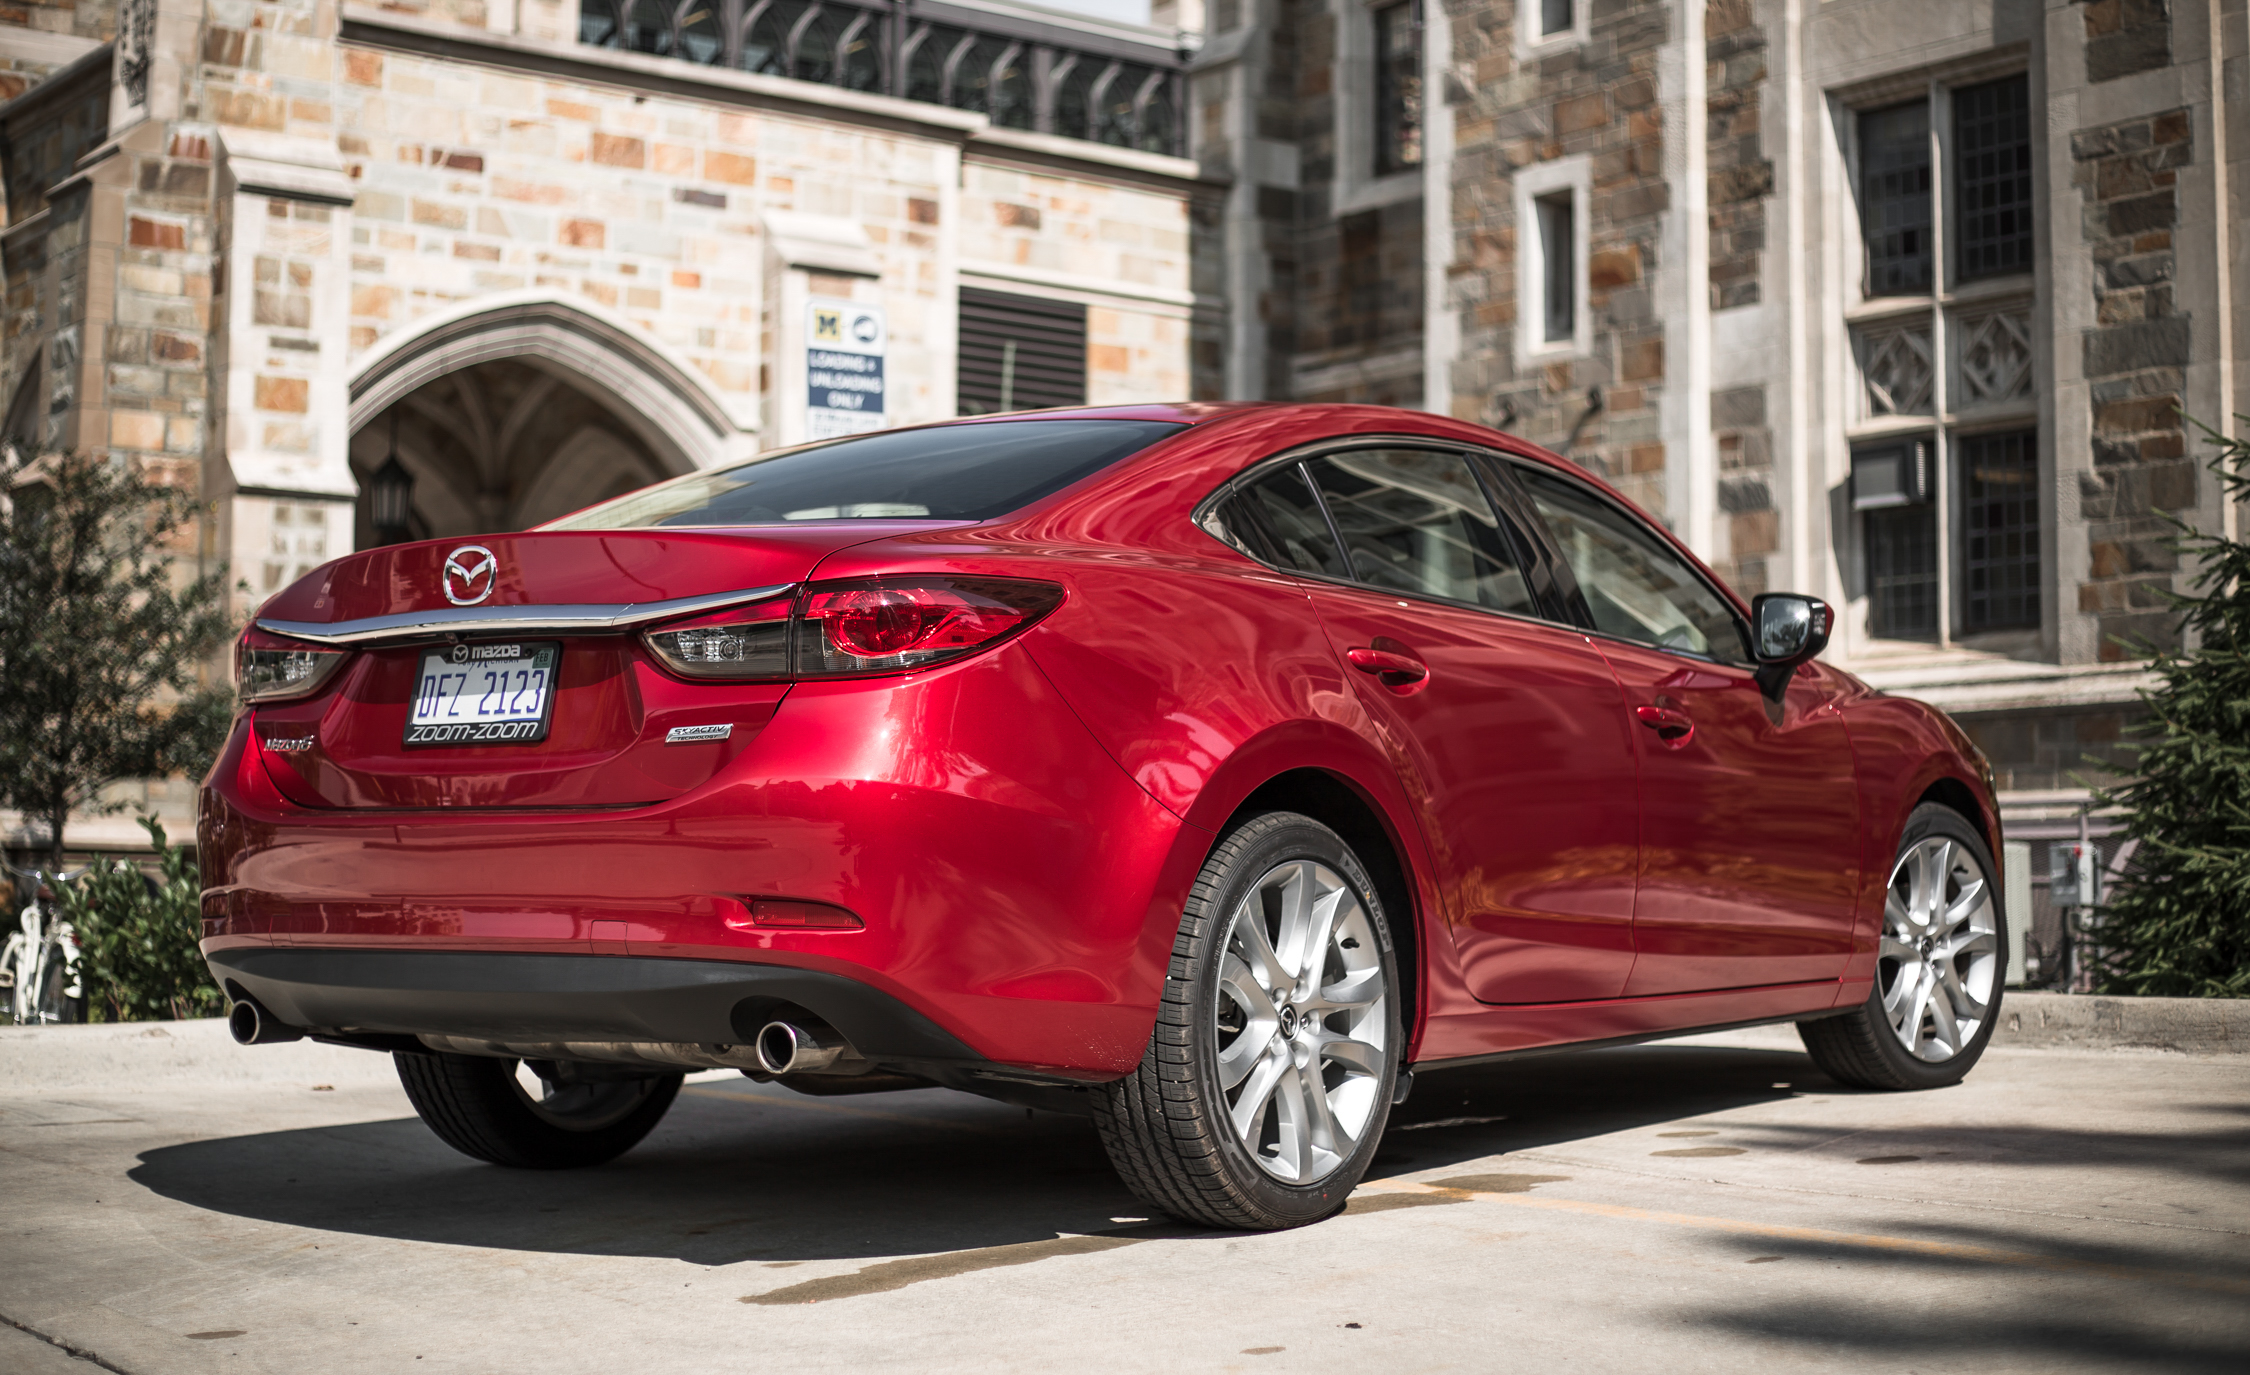 2016 Mazda 6 Touring Exterior Rear and Side